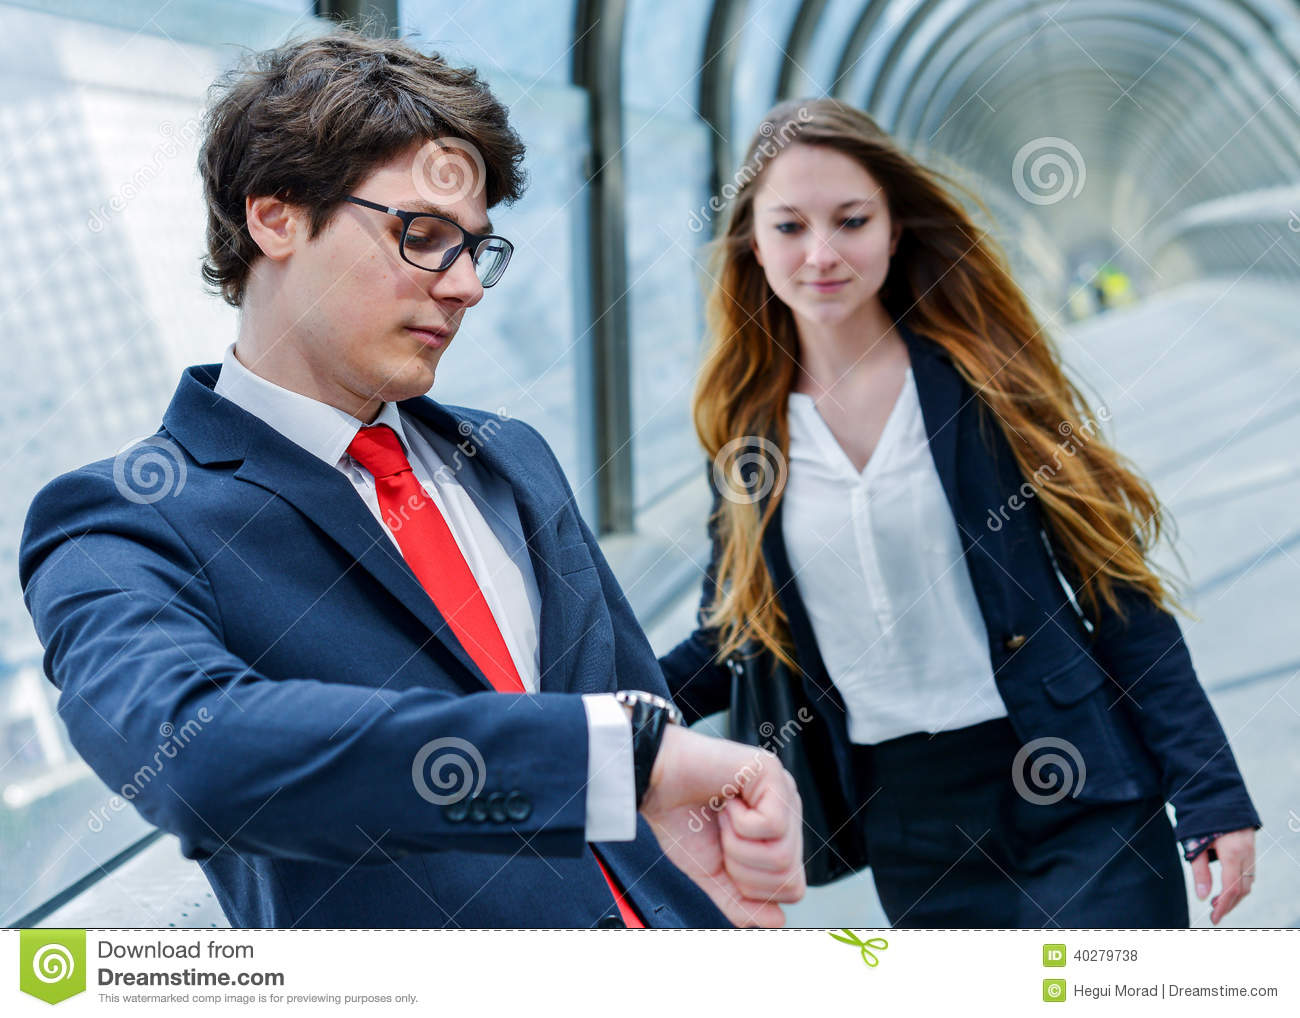 Junior executives of company are late for a business meeting